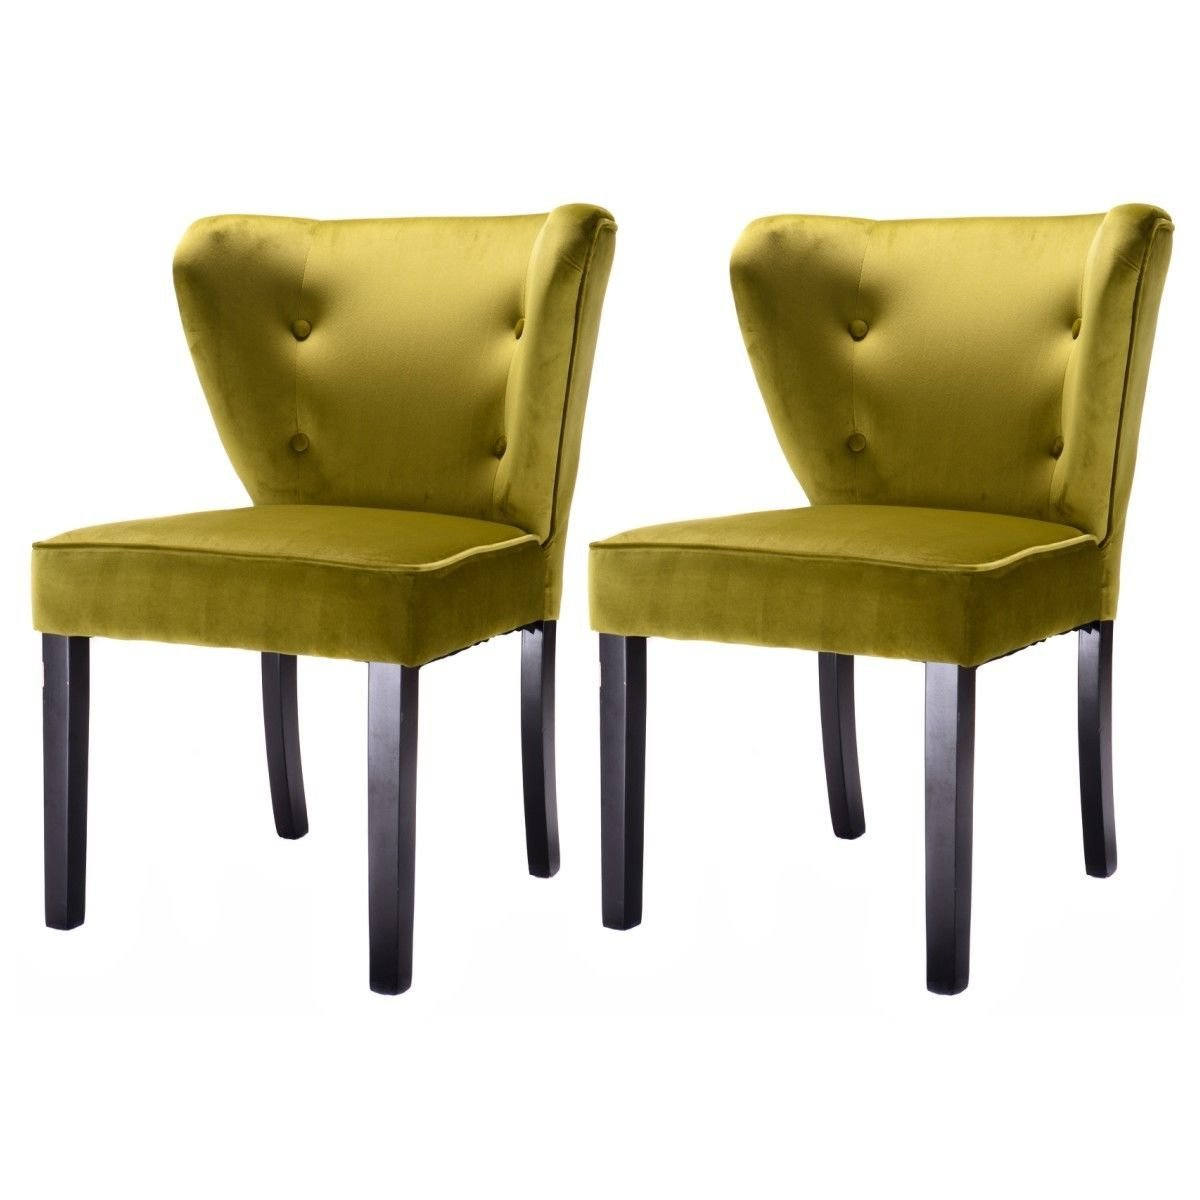 Swell Buy Giantex Set Of 2 Armless Accent Dining Chair Modern Gmtry Best Dining Table And Chair Ideas Images Gmtryco